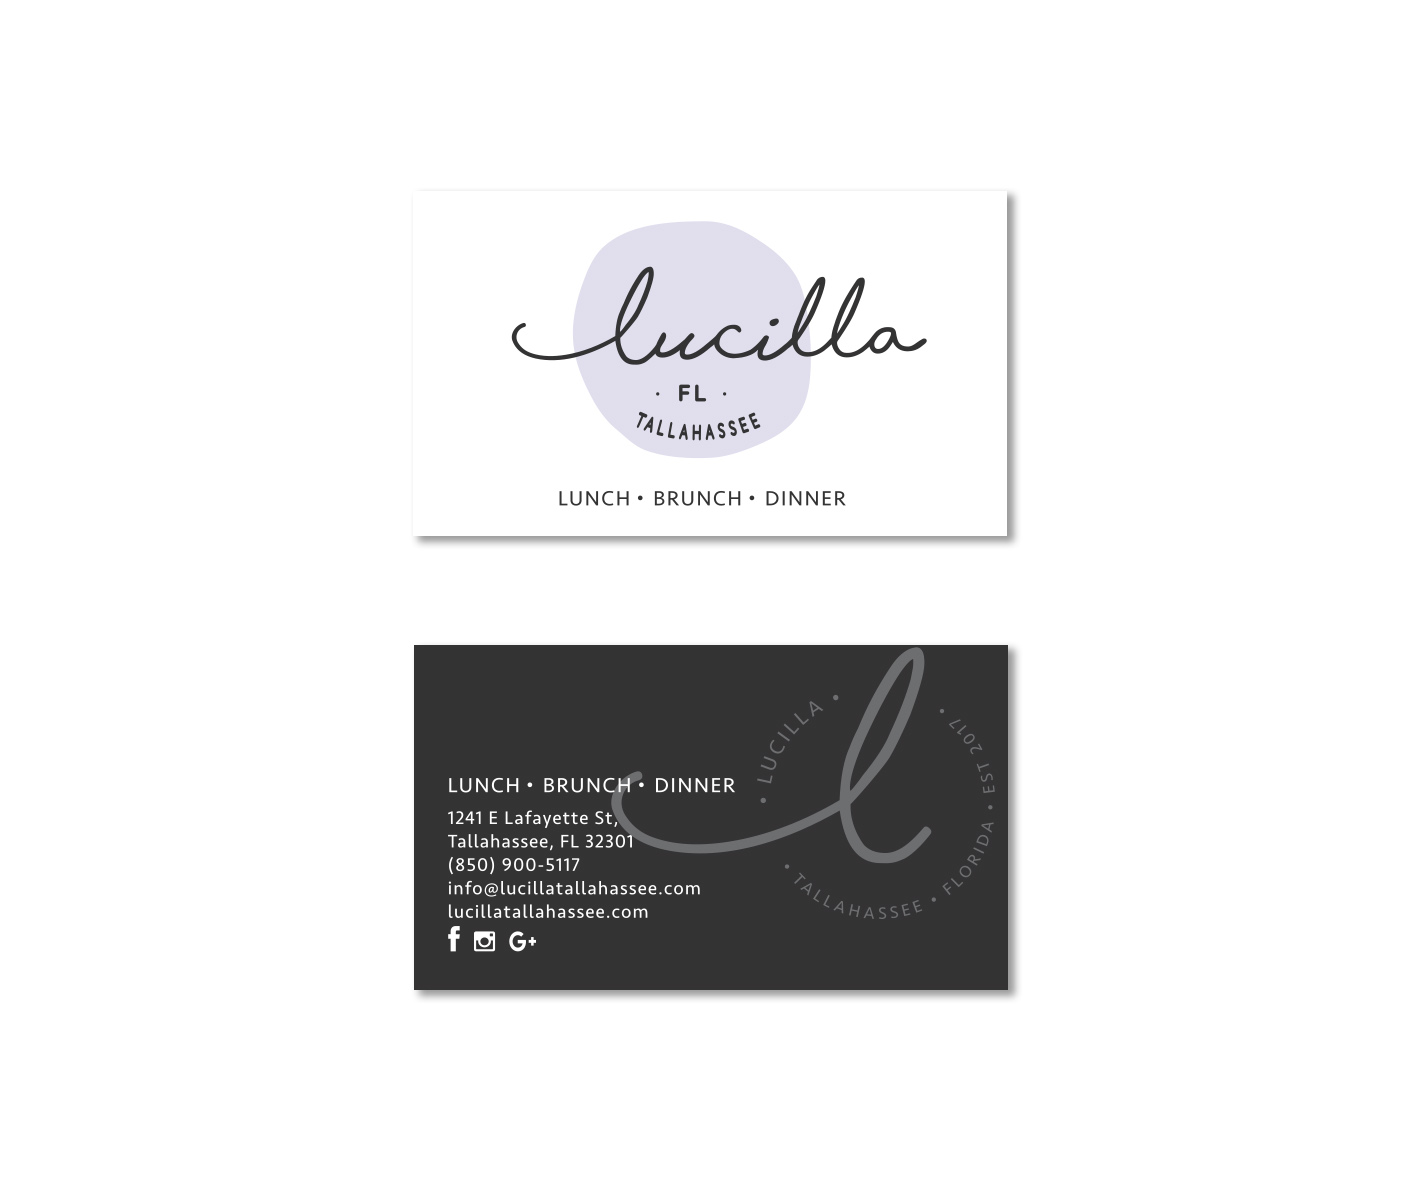 Lucilla Tallahassee Florida Logo Design by Billie Hardy Creative